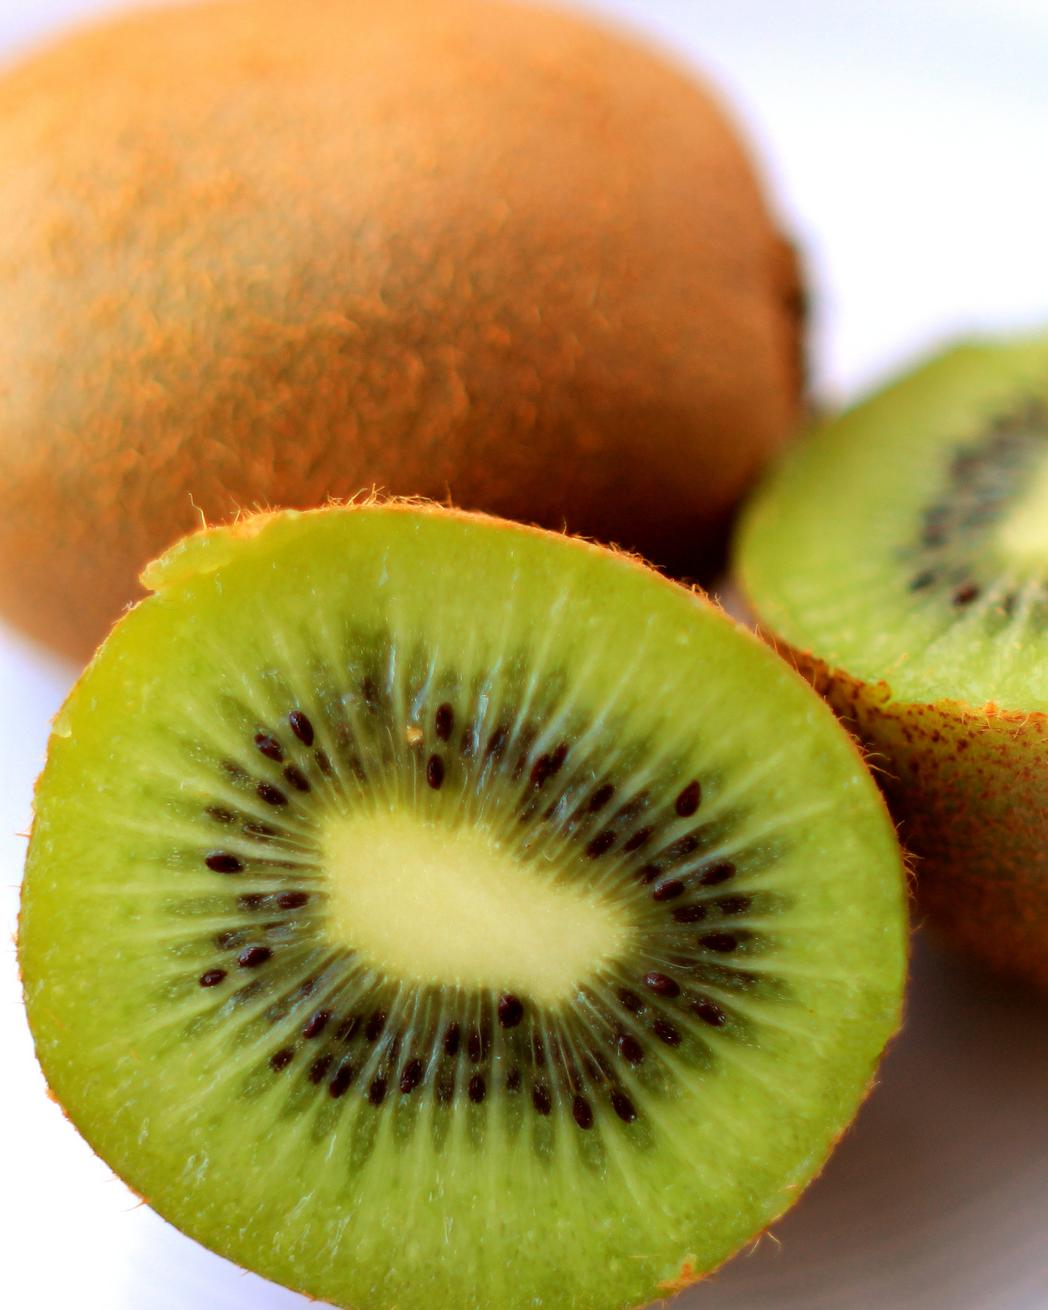 kiwi-fruit-vitaminc-0715